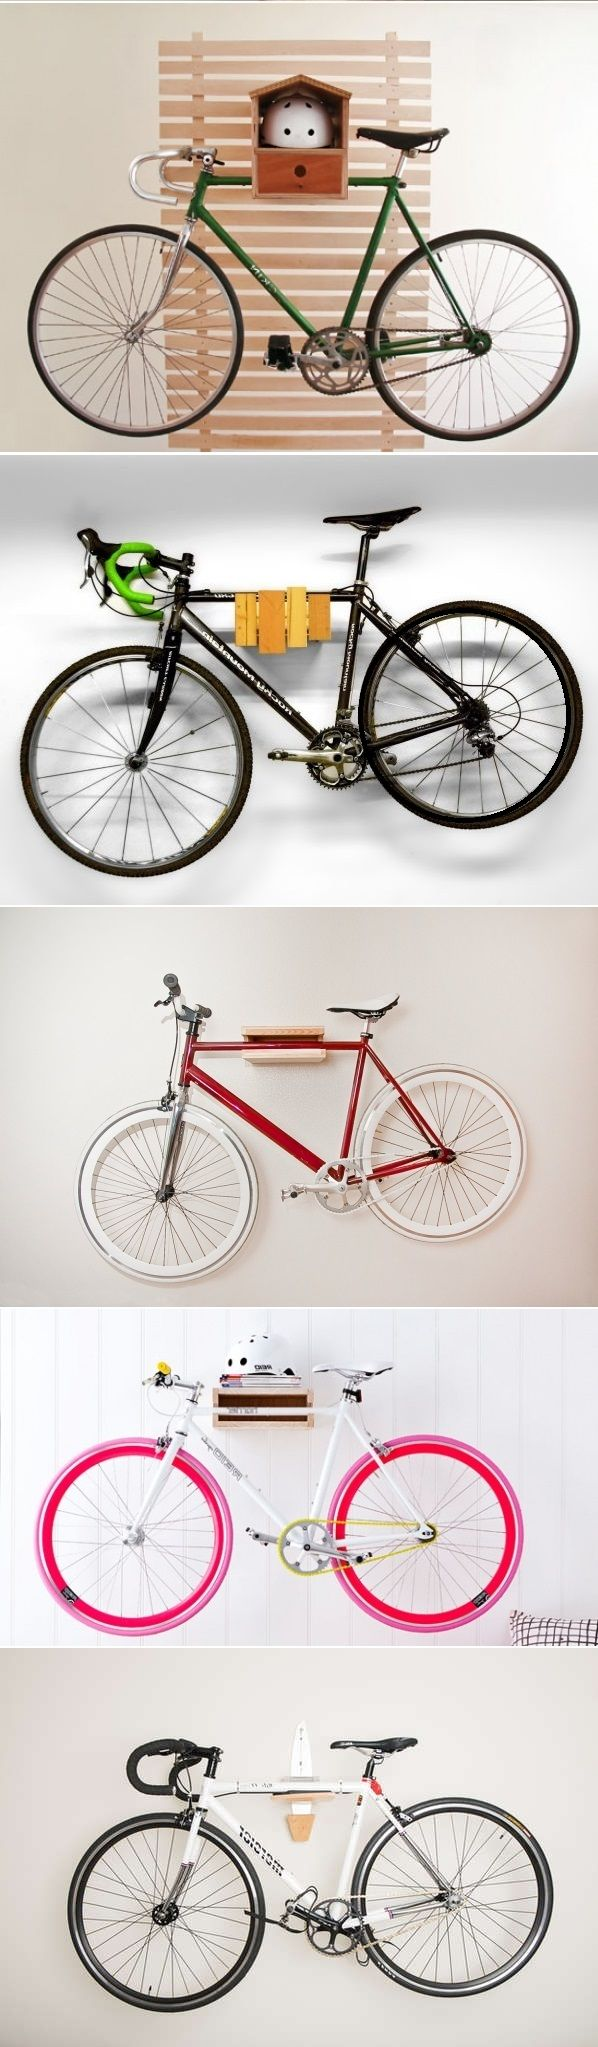 DIY Bike Wall Storage Racks